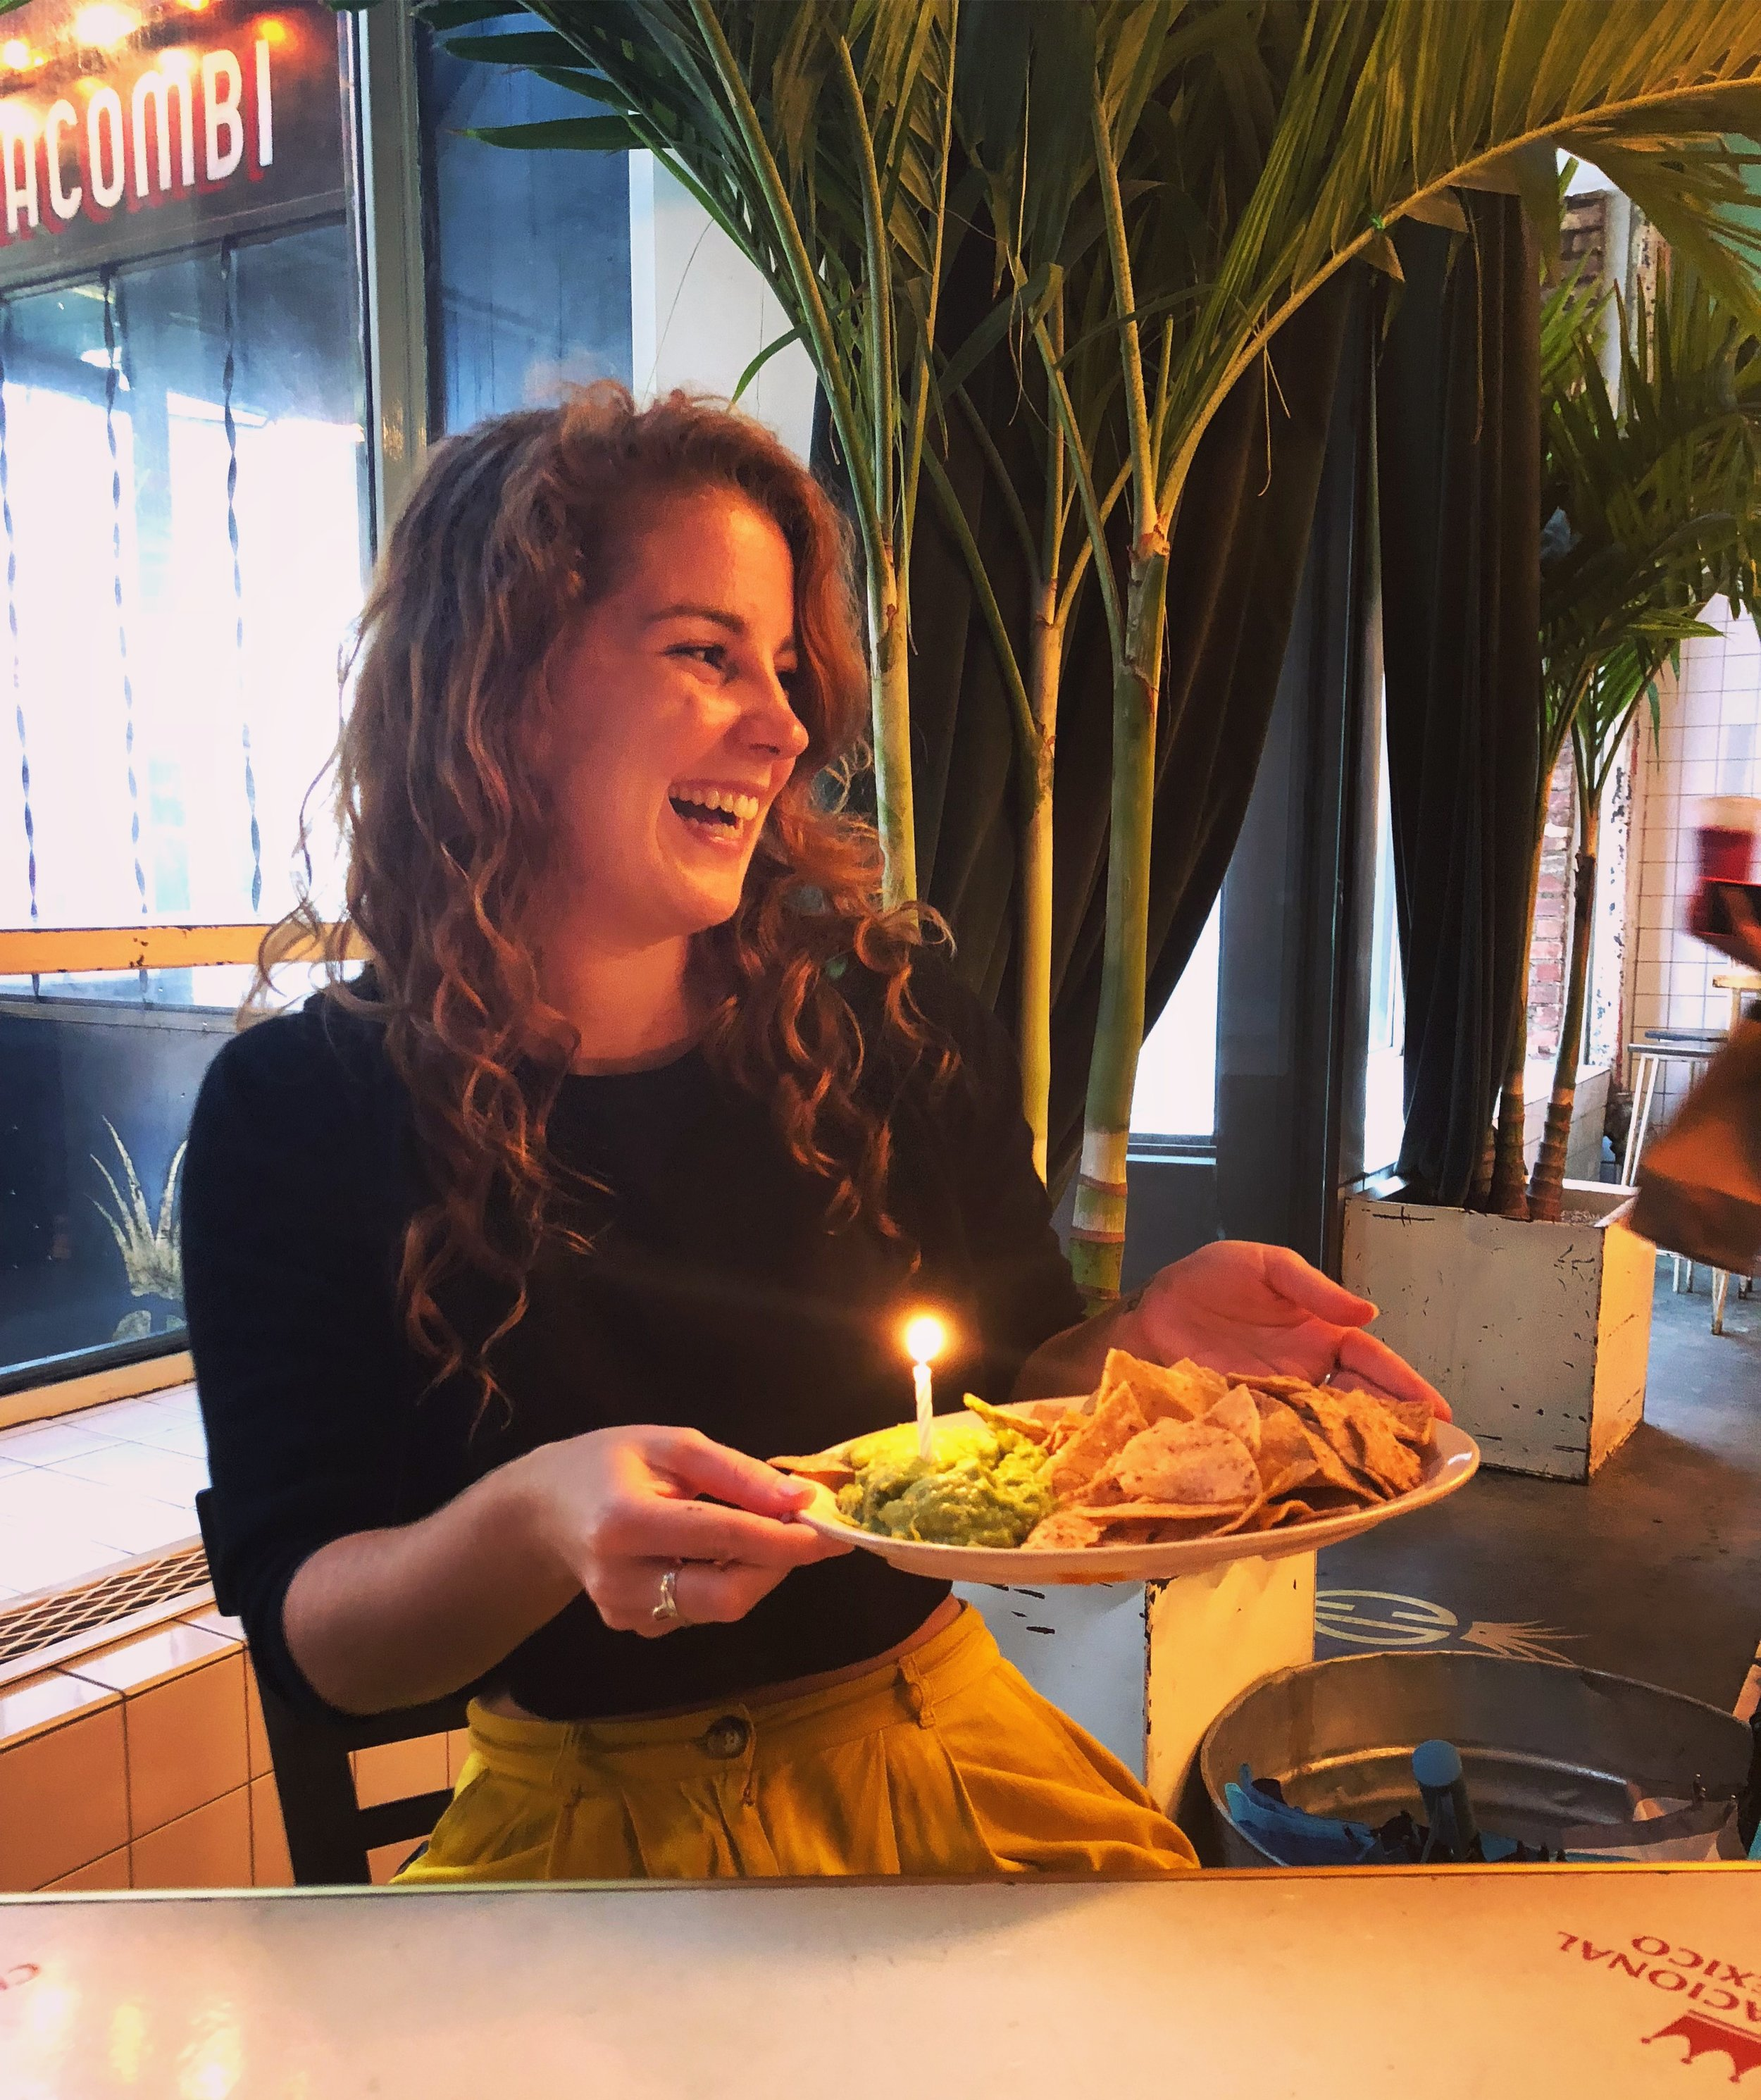 Yes, that is me with birthday guacamole.